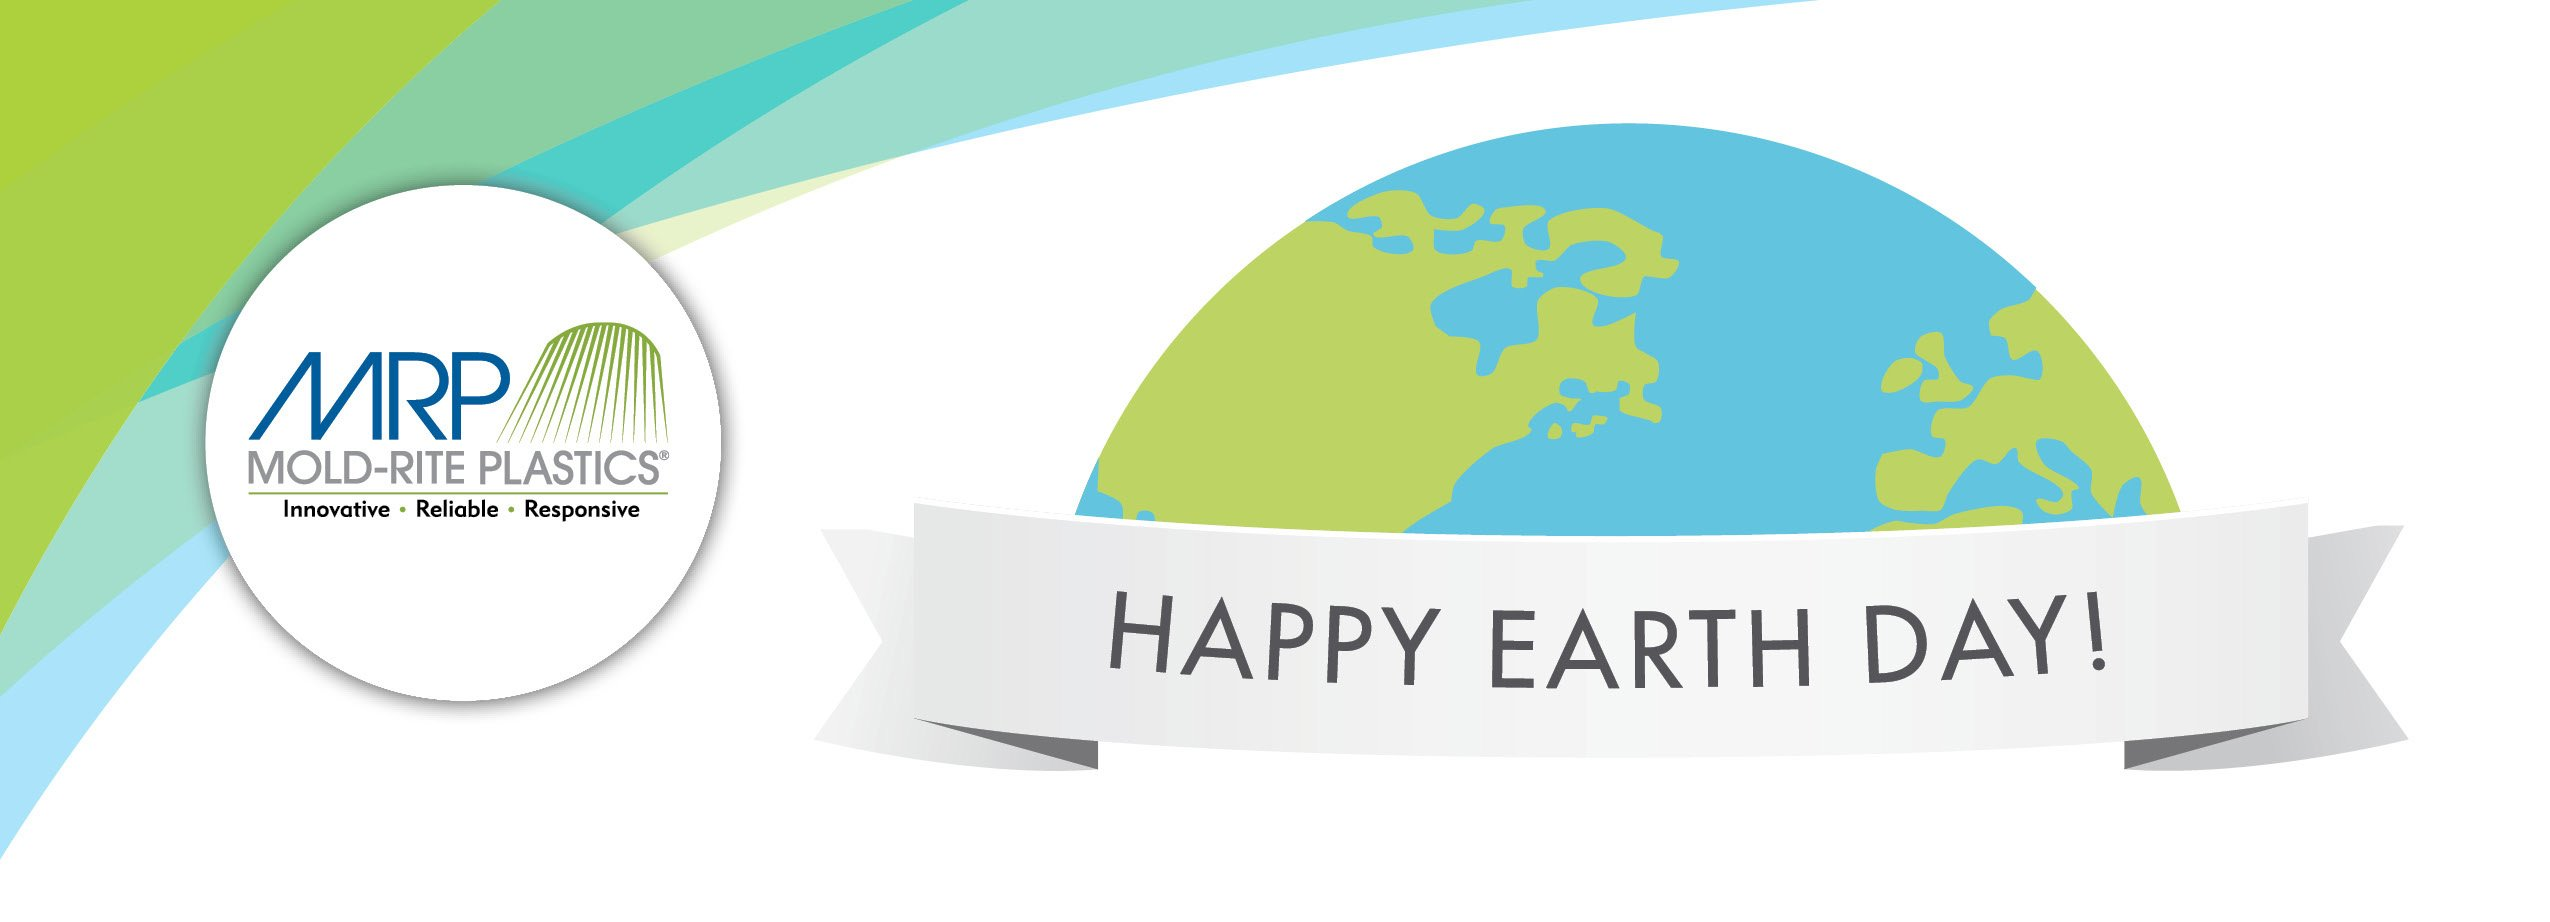 0422-Earth Day Banner